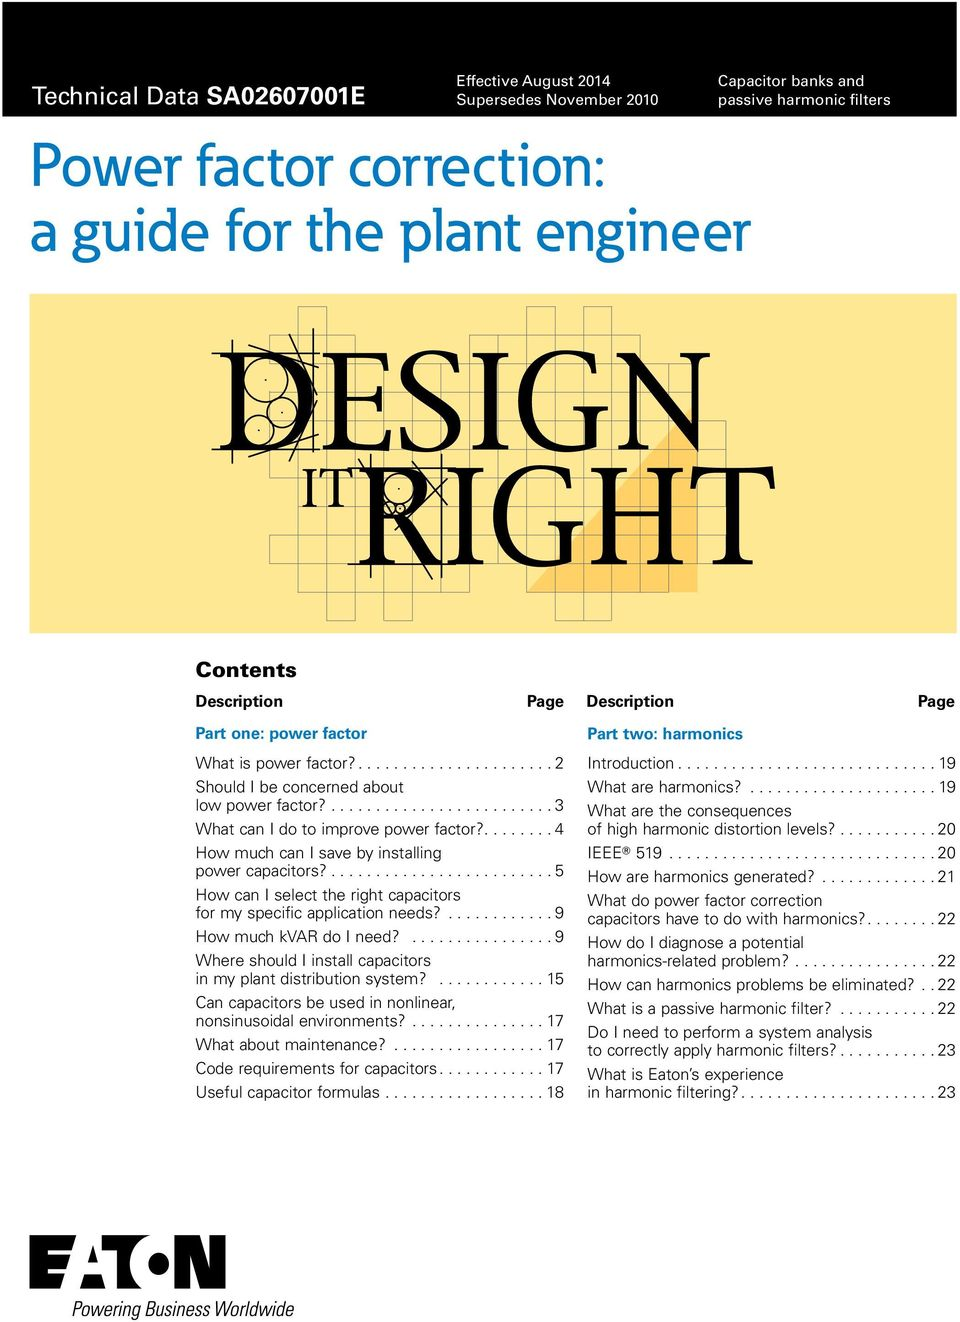 Power Factor Correction A Guide For The Plant Engineer Pdf